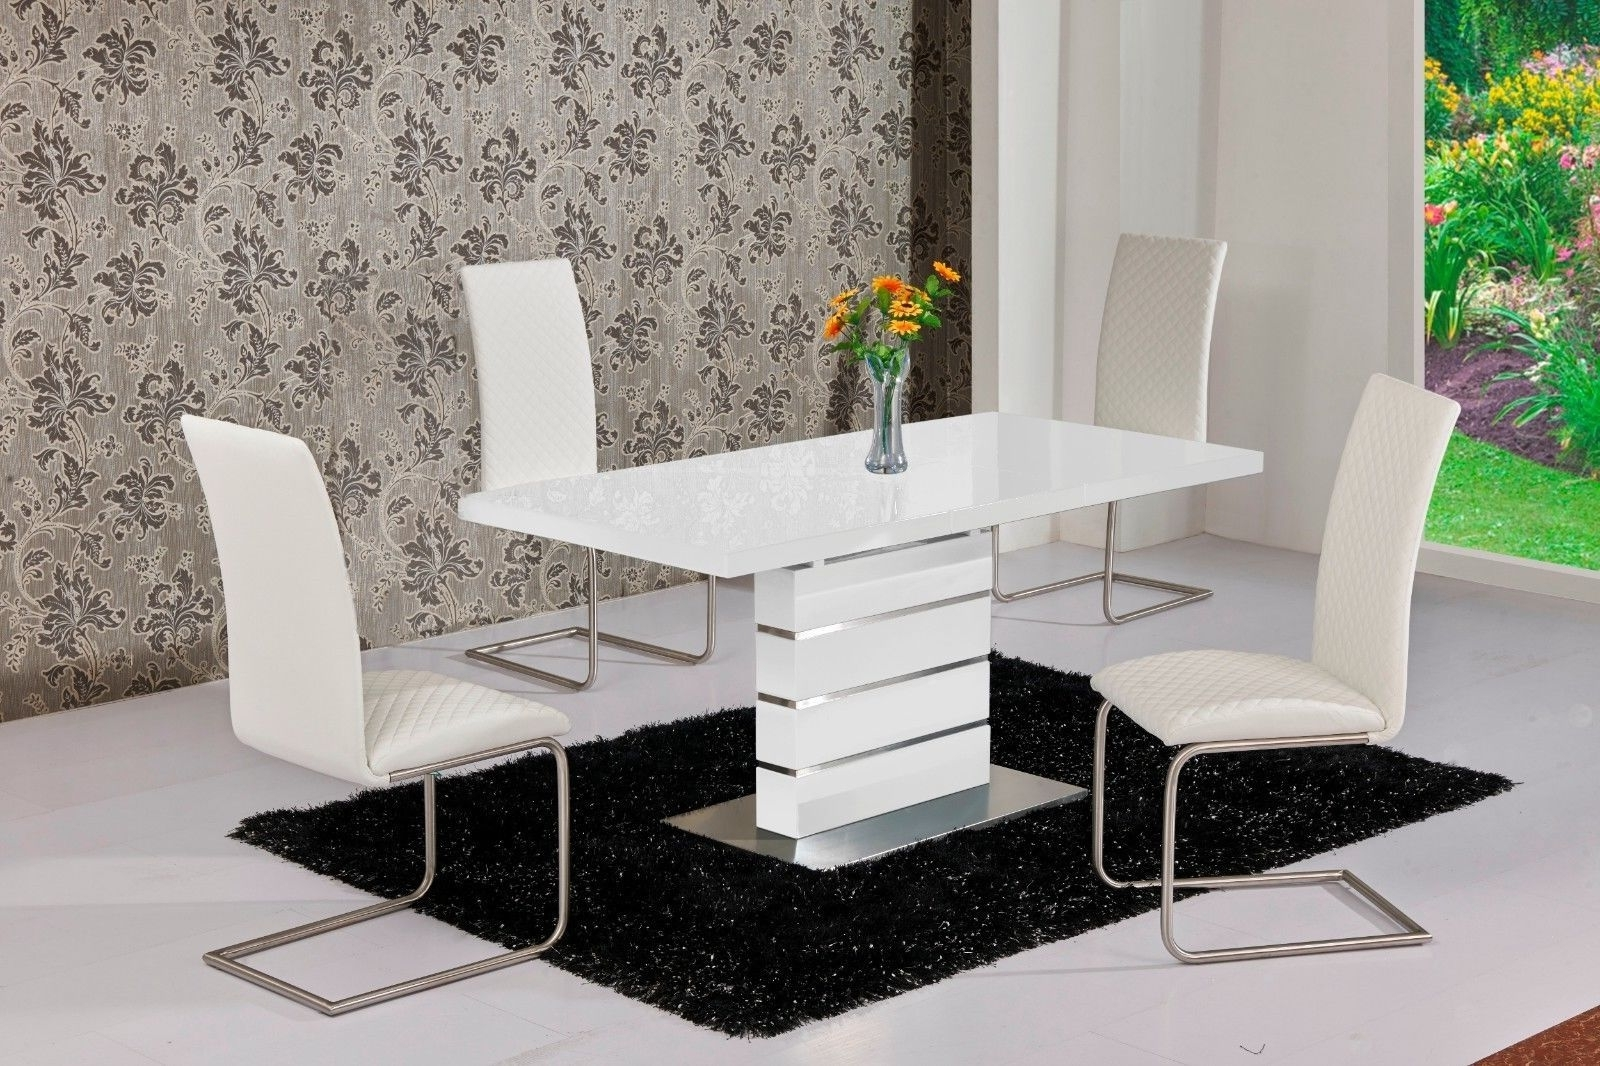 Mace High Gloss Extending 120 160 Dining Table & Chair Set – White Regarding Trendy White Gloss Dining Sets (View 8 of 25)